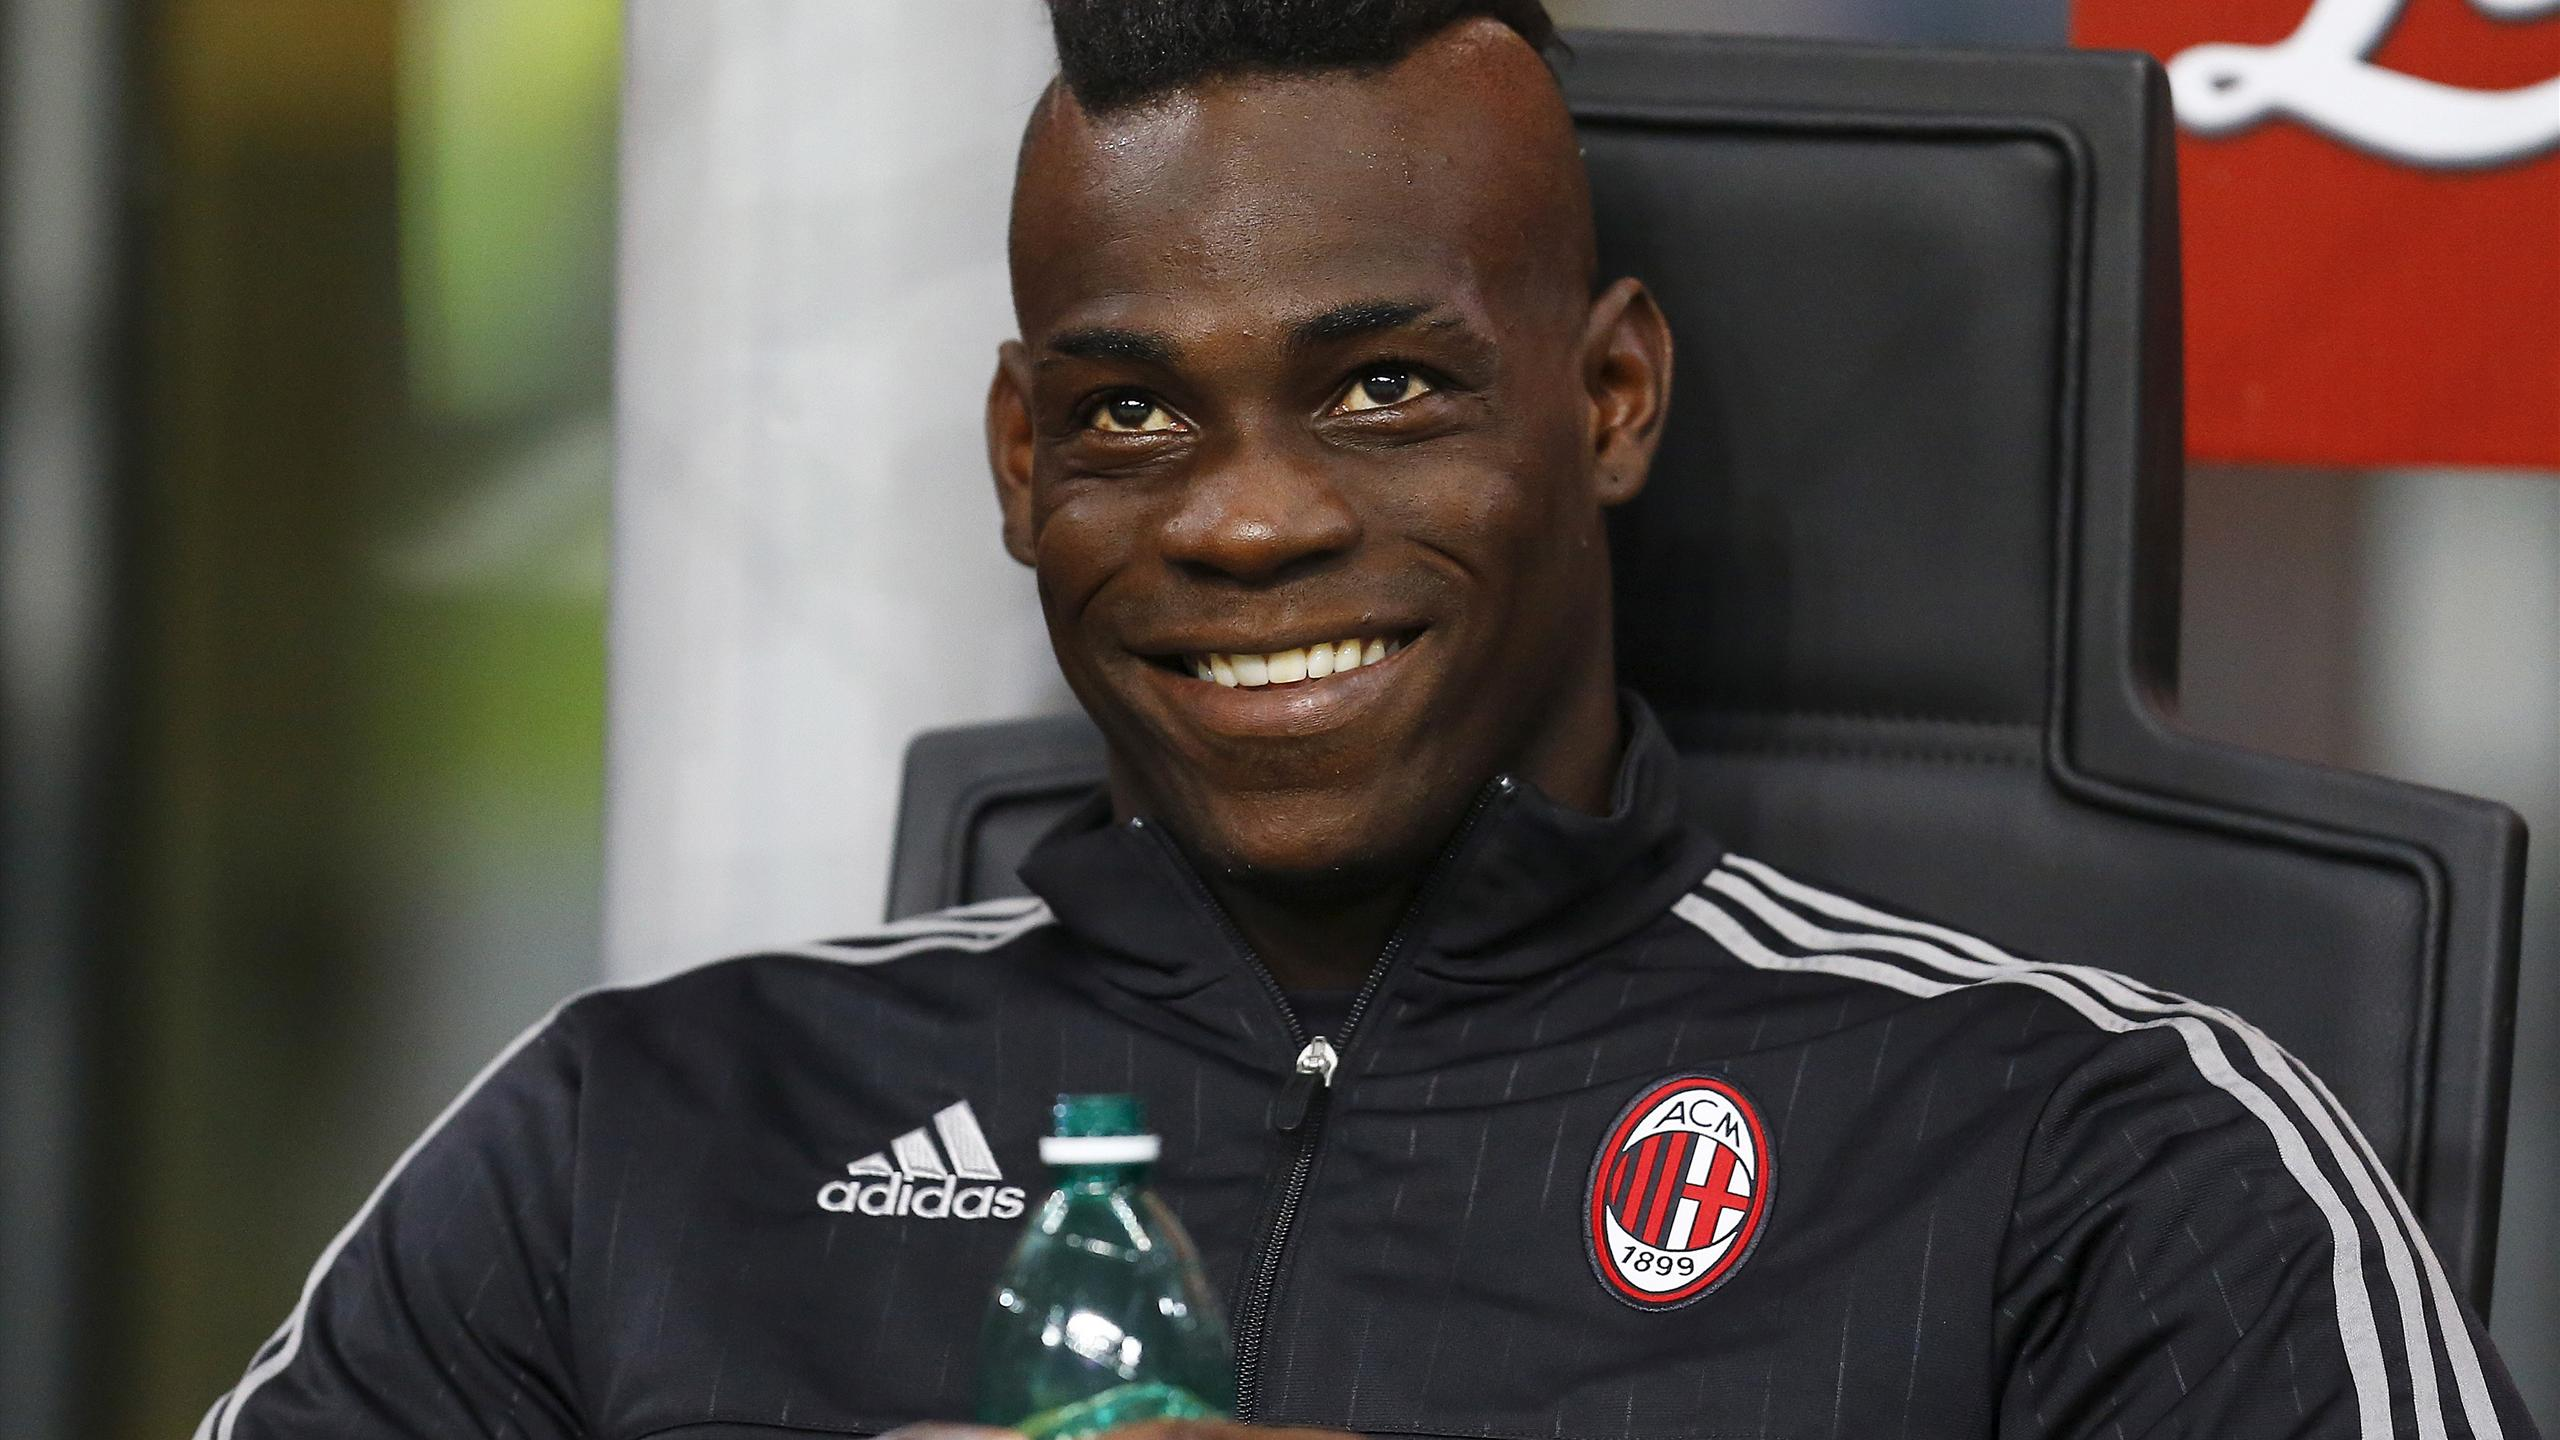 AC Milan's Mario Balotelli sits on the bench at the San Siro